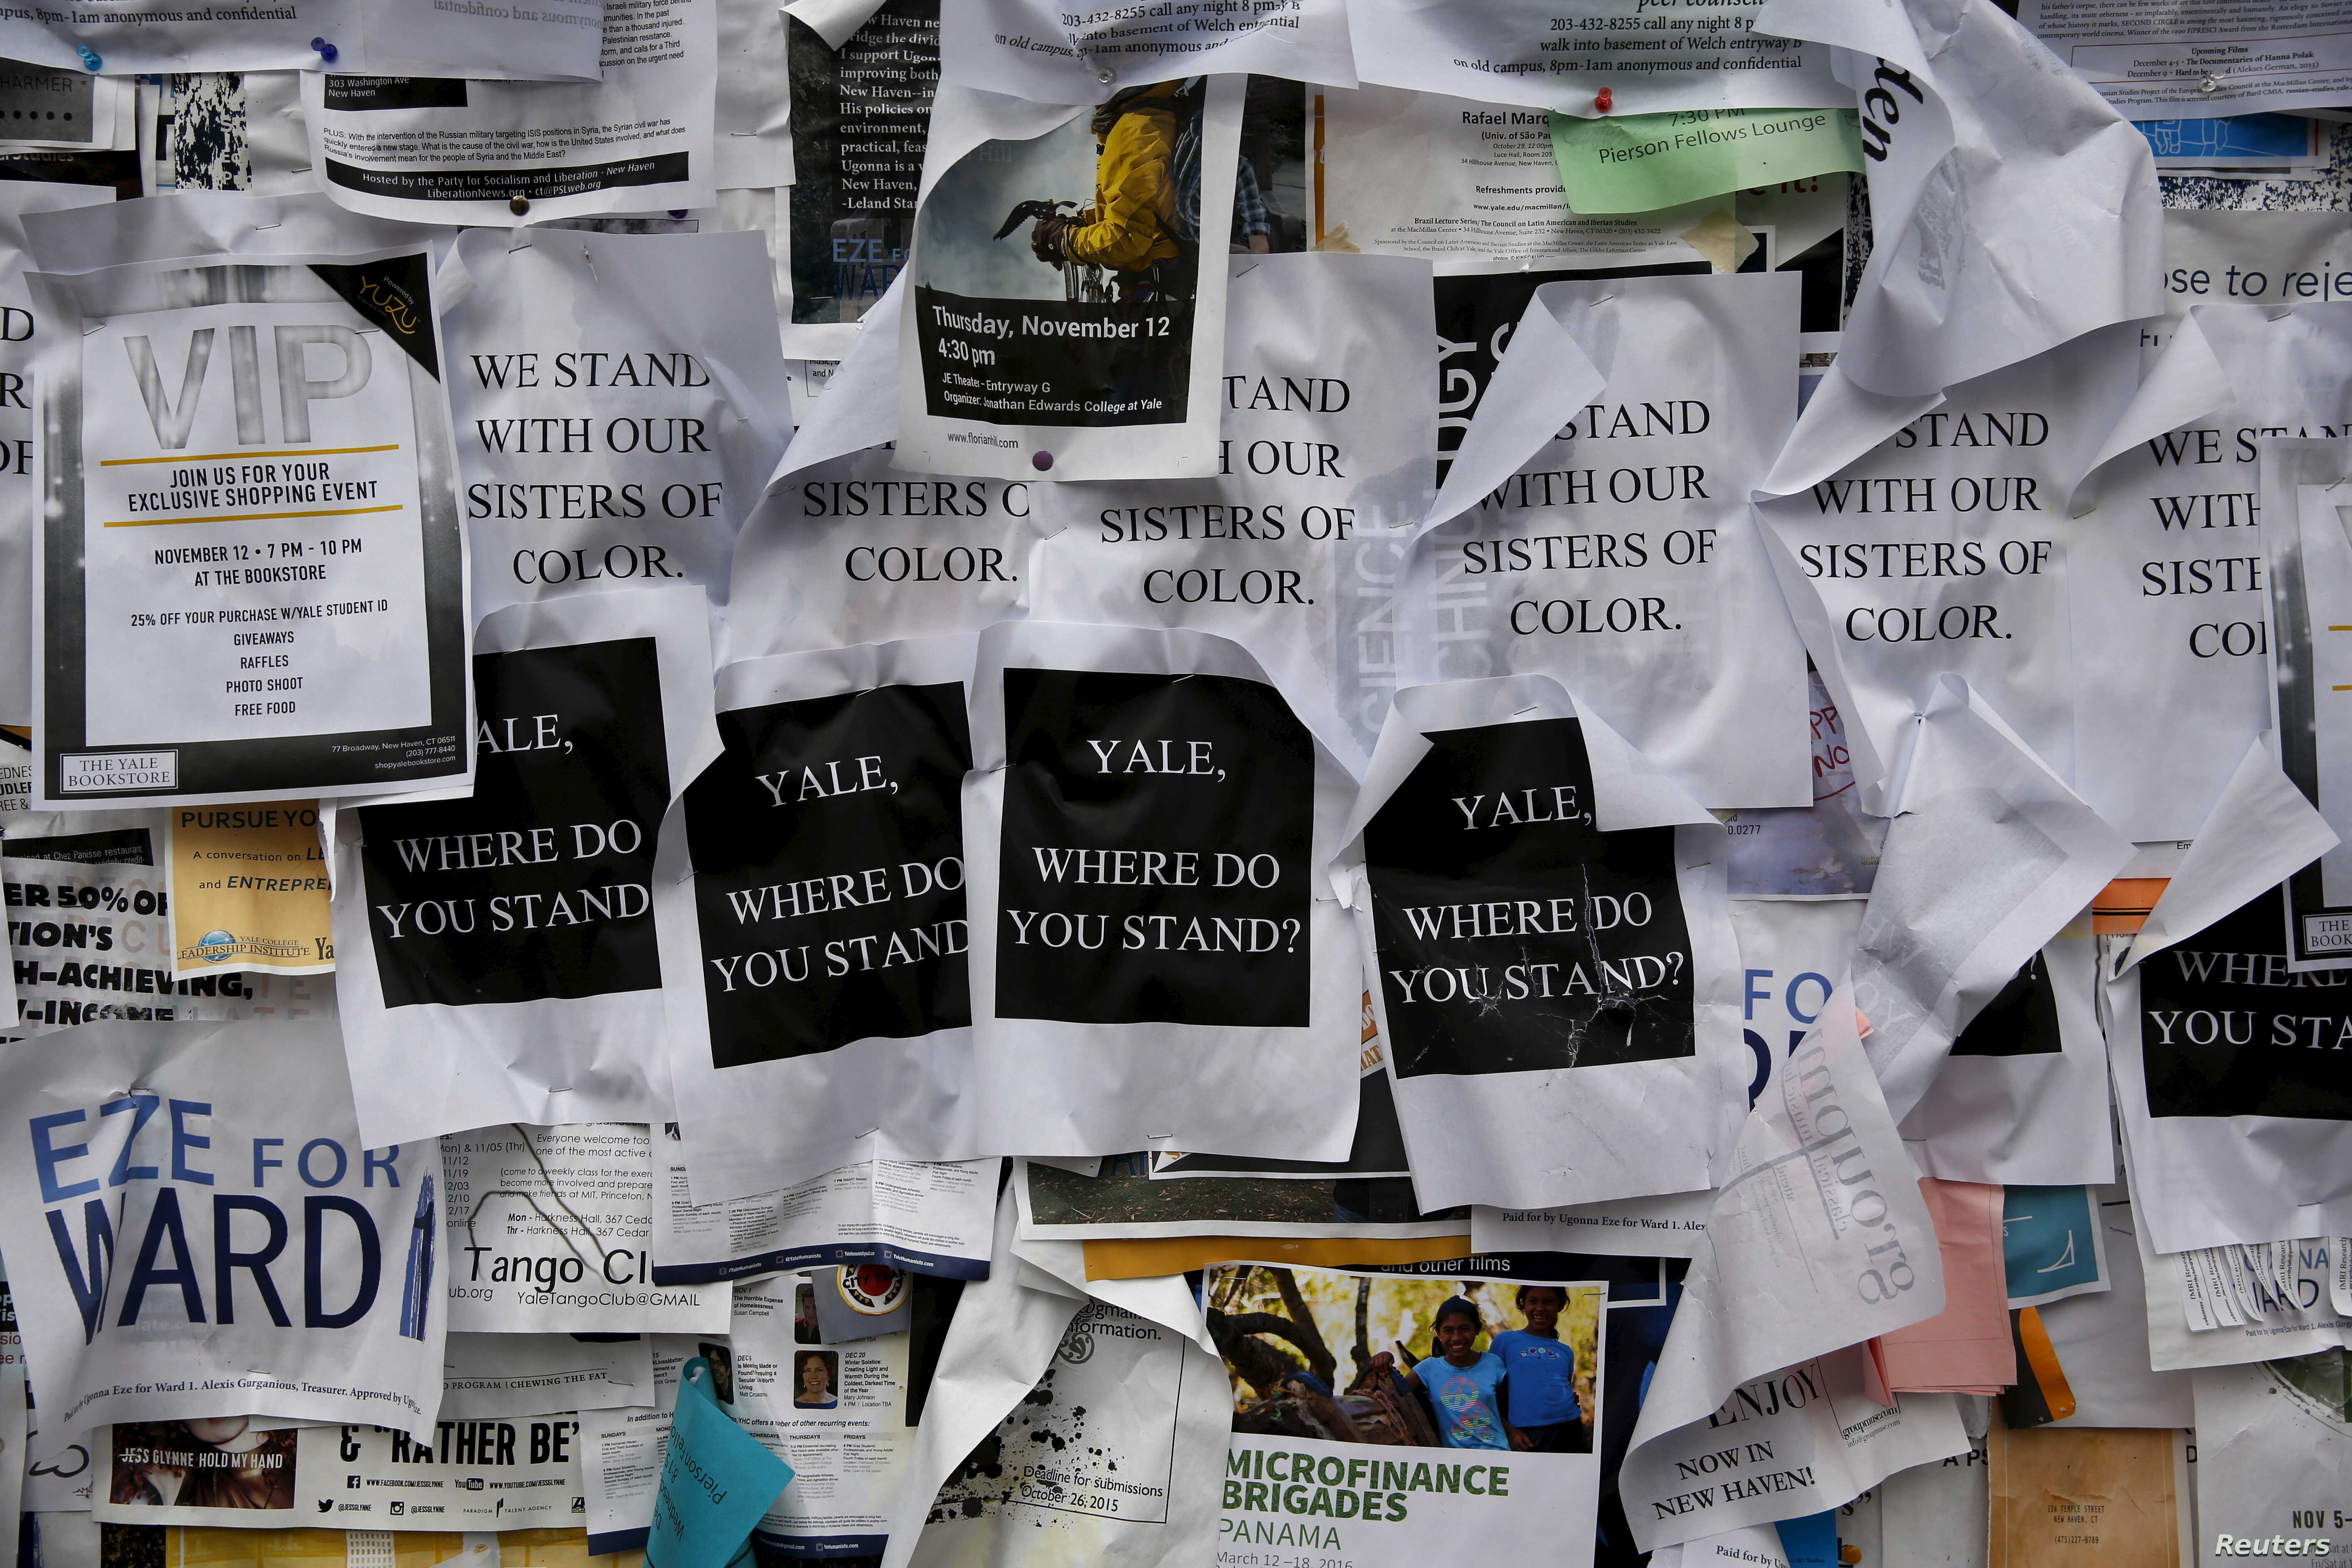 Flyers on a college noticeboard on campus at Yale University in New Haven, Conn., Nov. 12, 2015. More than 1,000 students, professors and staff gathered Wednesday to discuss race and diversity at the elite Ivy League school.